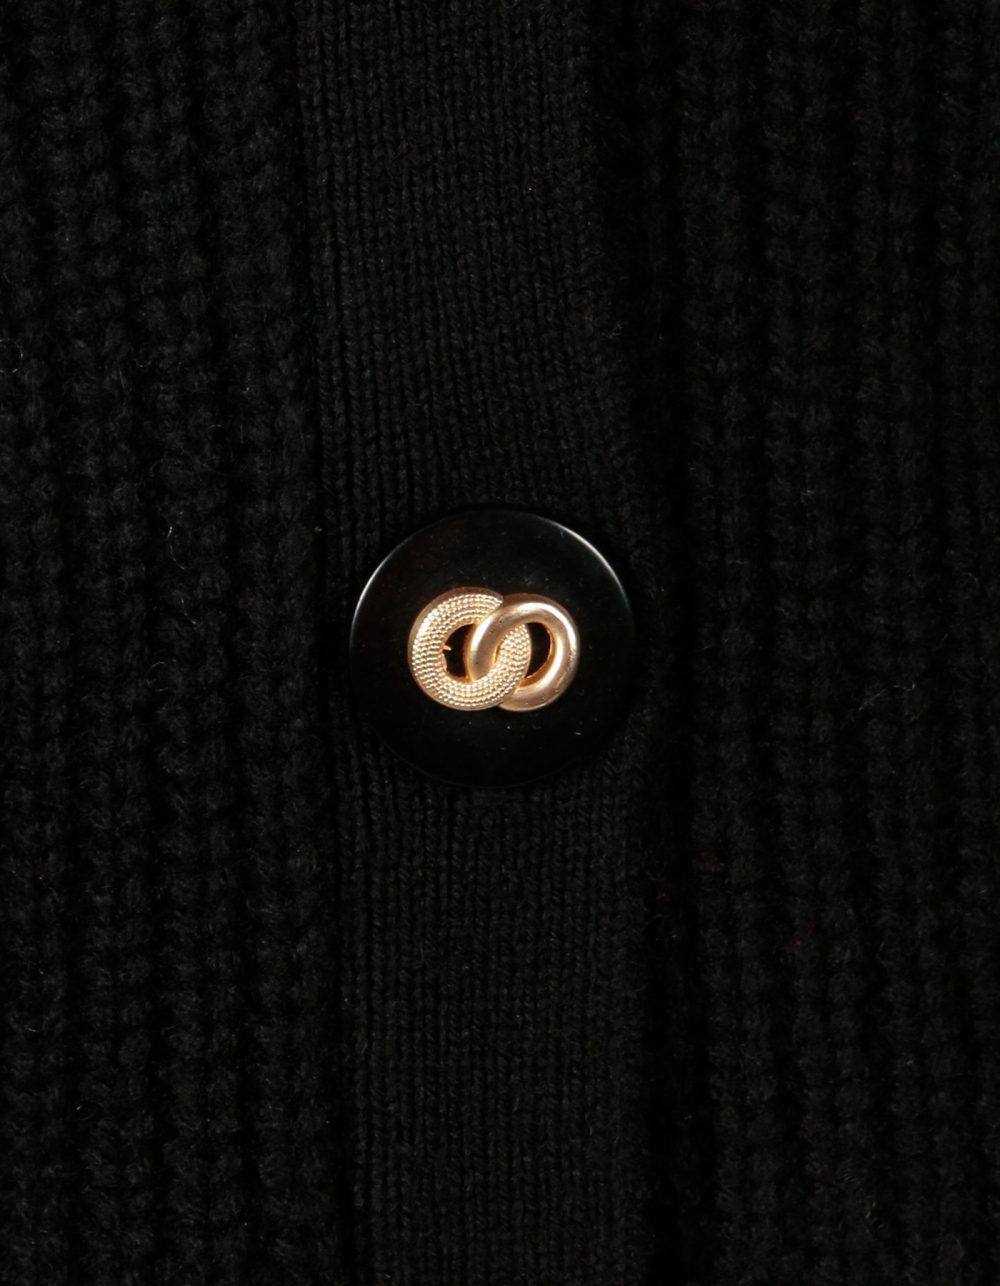 Button detail, two gold rings entwined, on a malin darlin black Coco rib wool and cashmere cardigan.